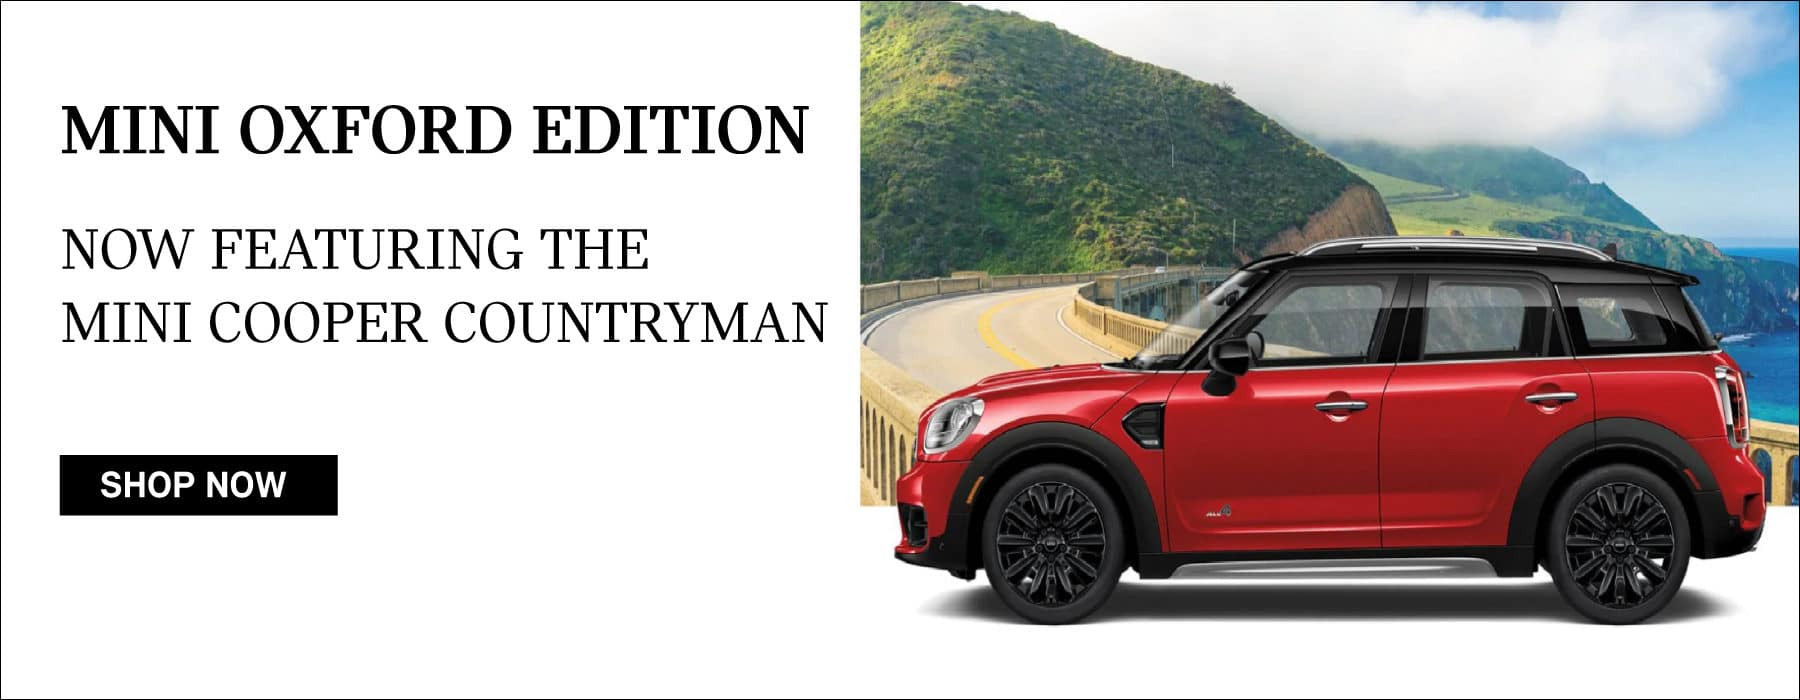 MINI OXFORED EDITION. Now featuring the Countryman